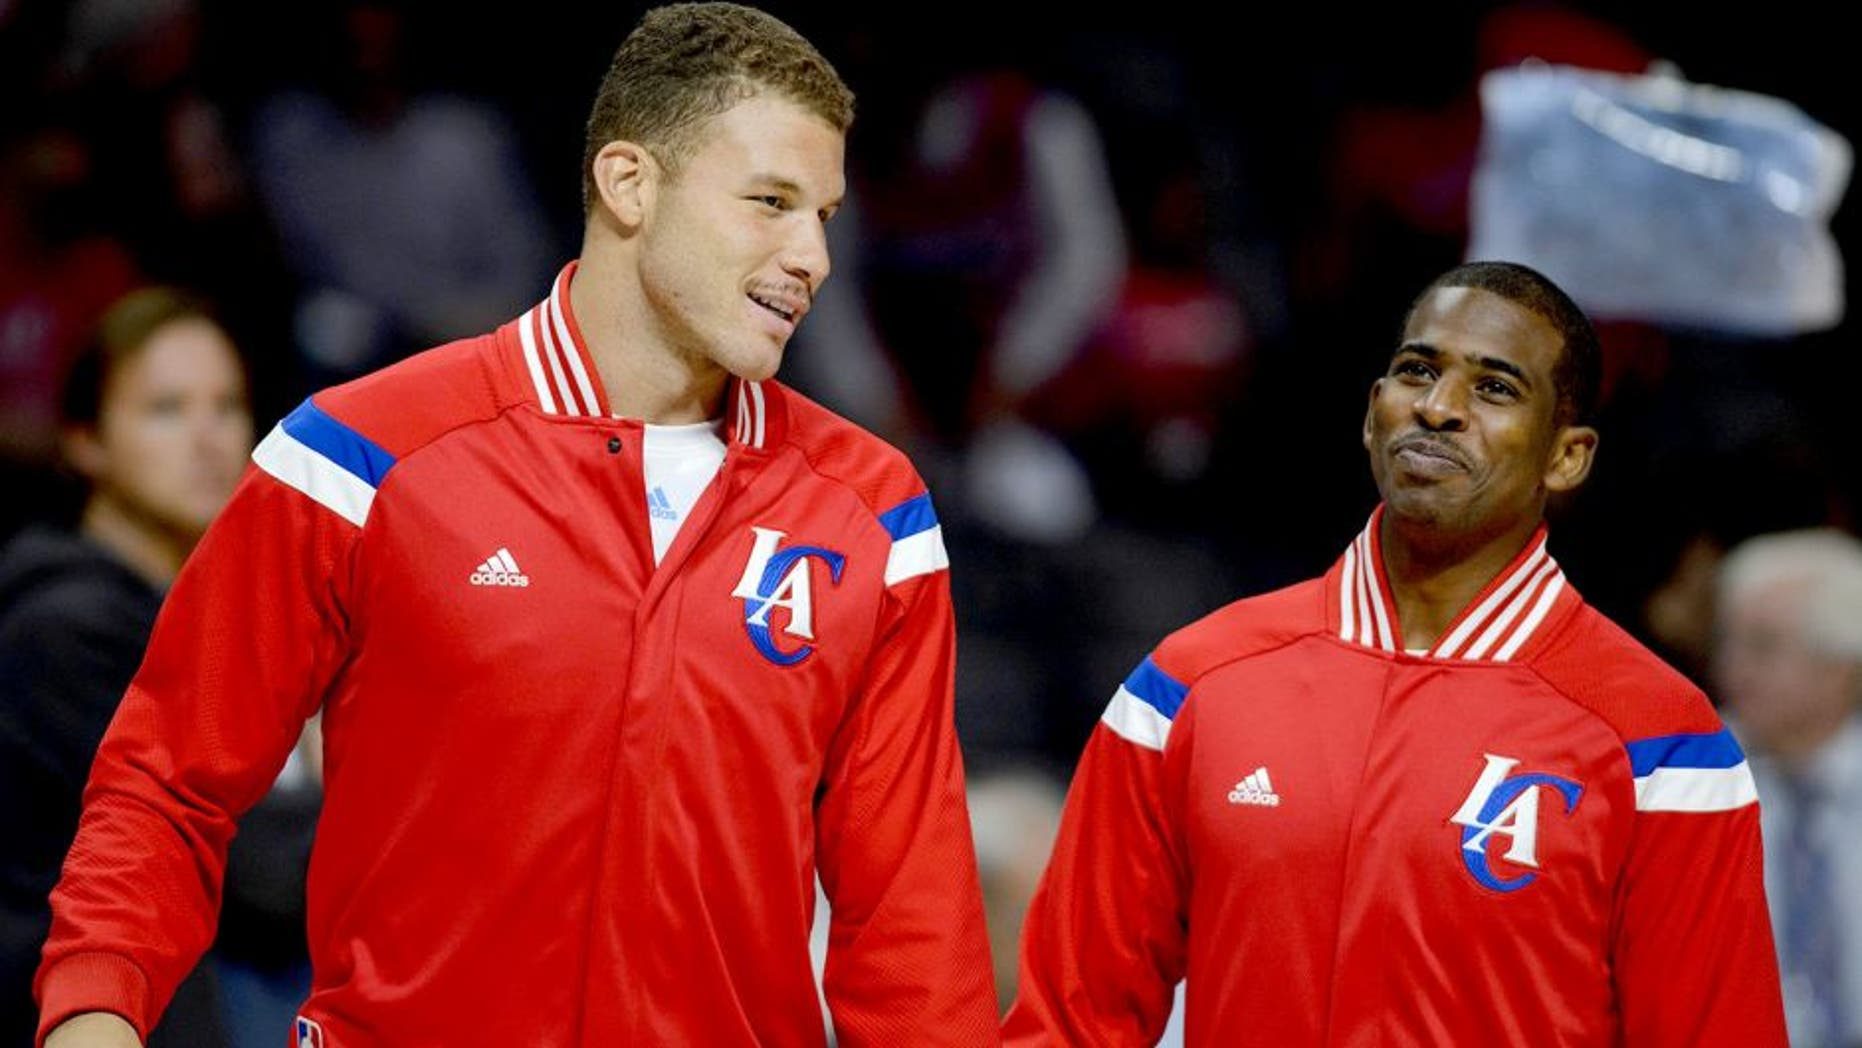 Nov 2, 2014; Los Angeles, CA, USA; Los Angeles Clippers forward Blake Griffin (left) talks with Los Angeles Clippers guard Chris Paul (right) prior to the game against the Sacramento Kings at Staples Center. Mandatory Credit: Kelvin Kuo-USA TODAY Sports